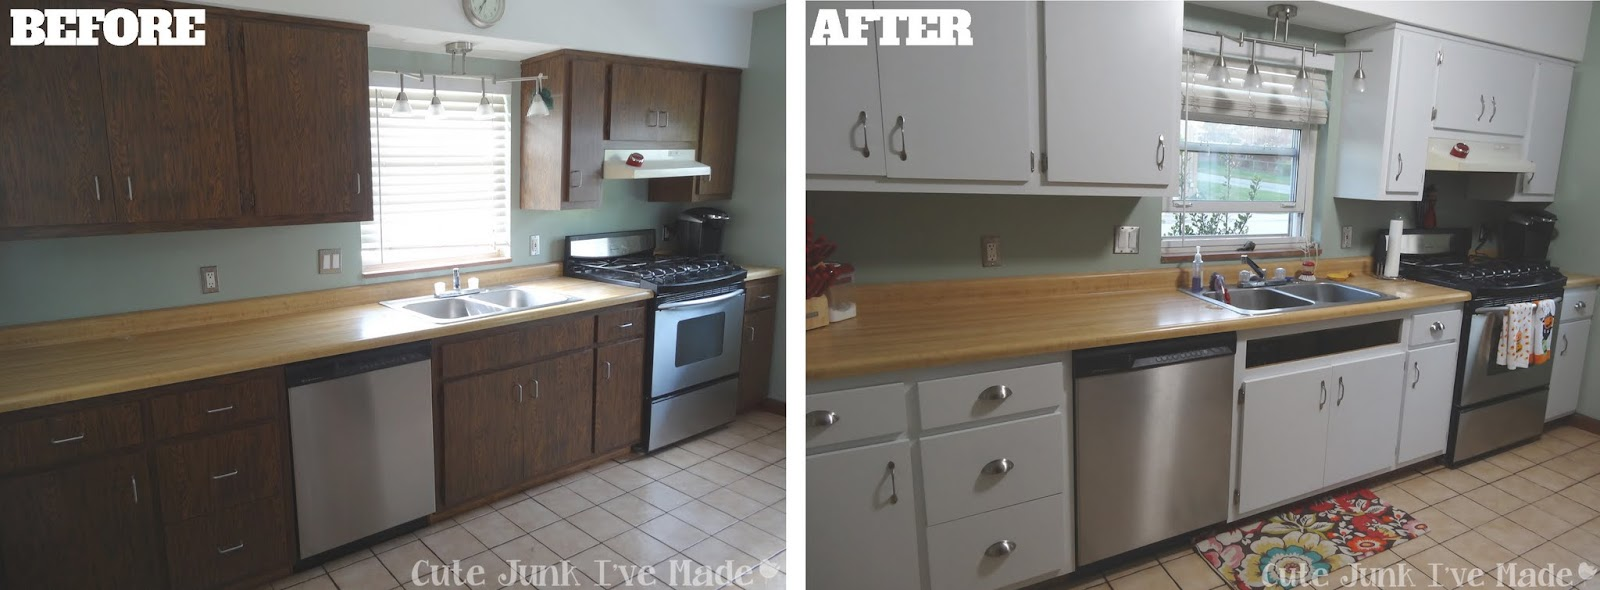 Gallery For Painting Laminate Cabinets Before And After